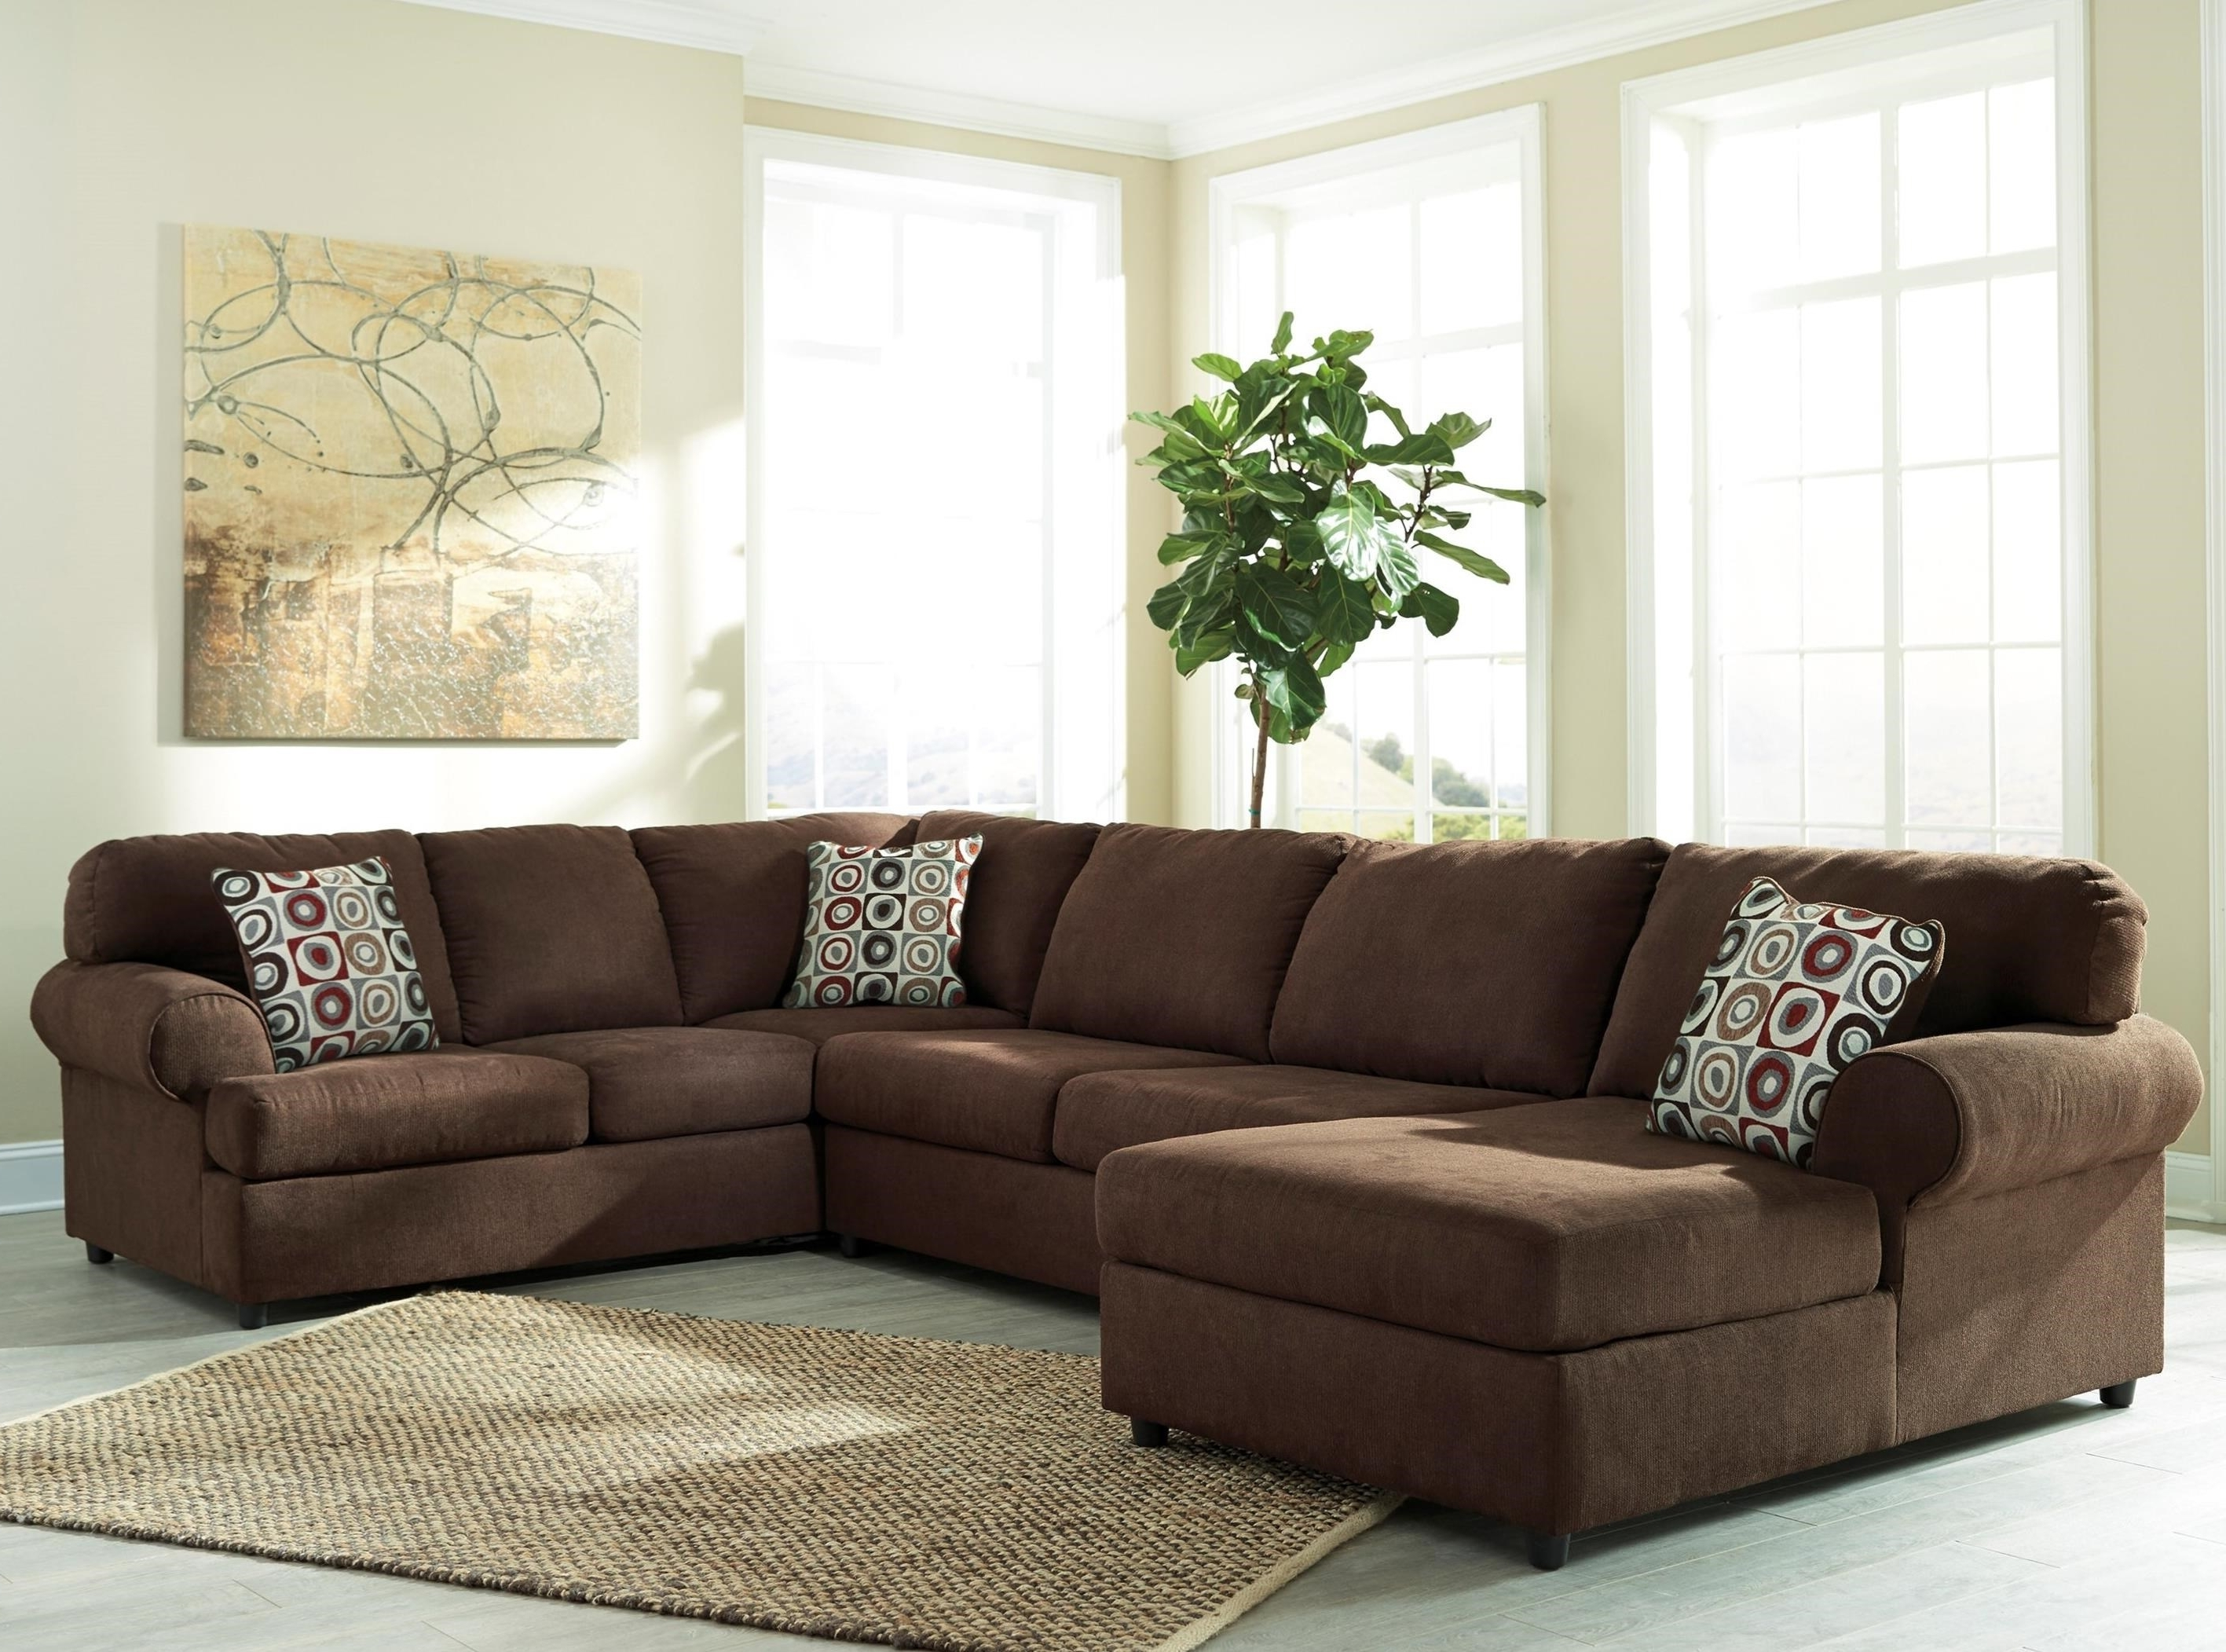 Well Known Ashley Chaise Sofas With Regard To Signature Designashley Jayceon 3 Piece Sectional With Left (View 15 of 15)